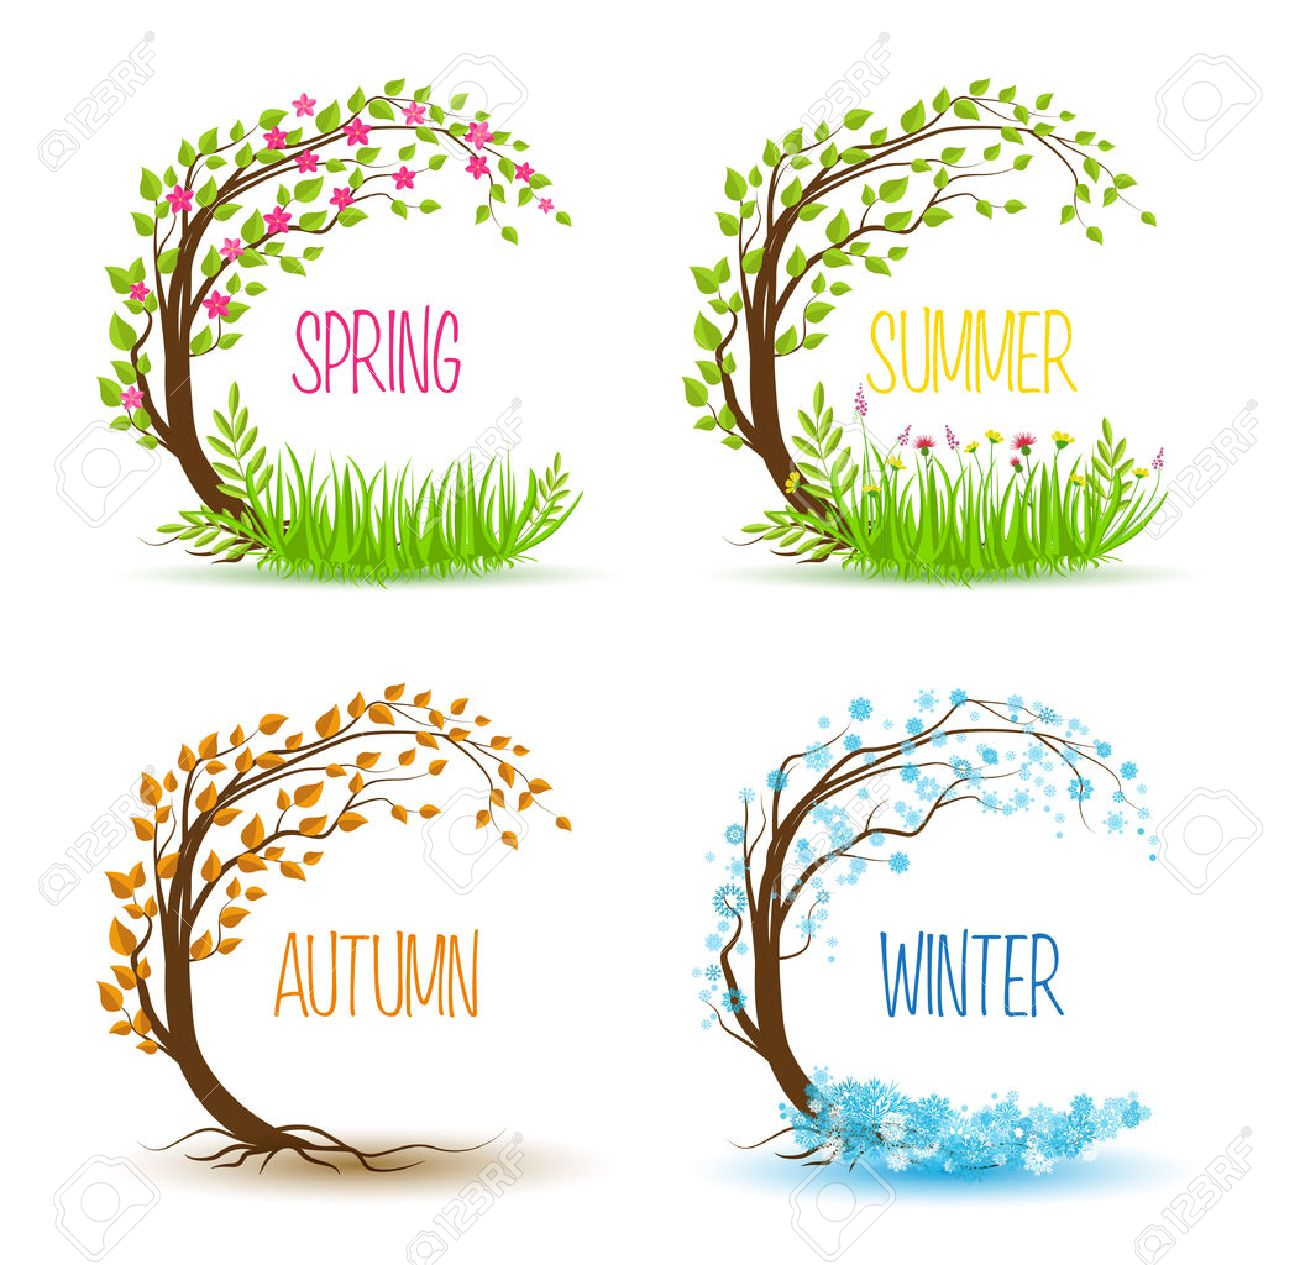 Winter Spring Cliparts Free Download Clip Art.